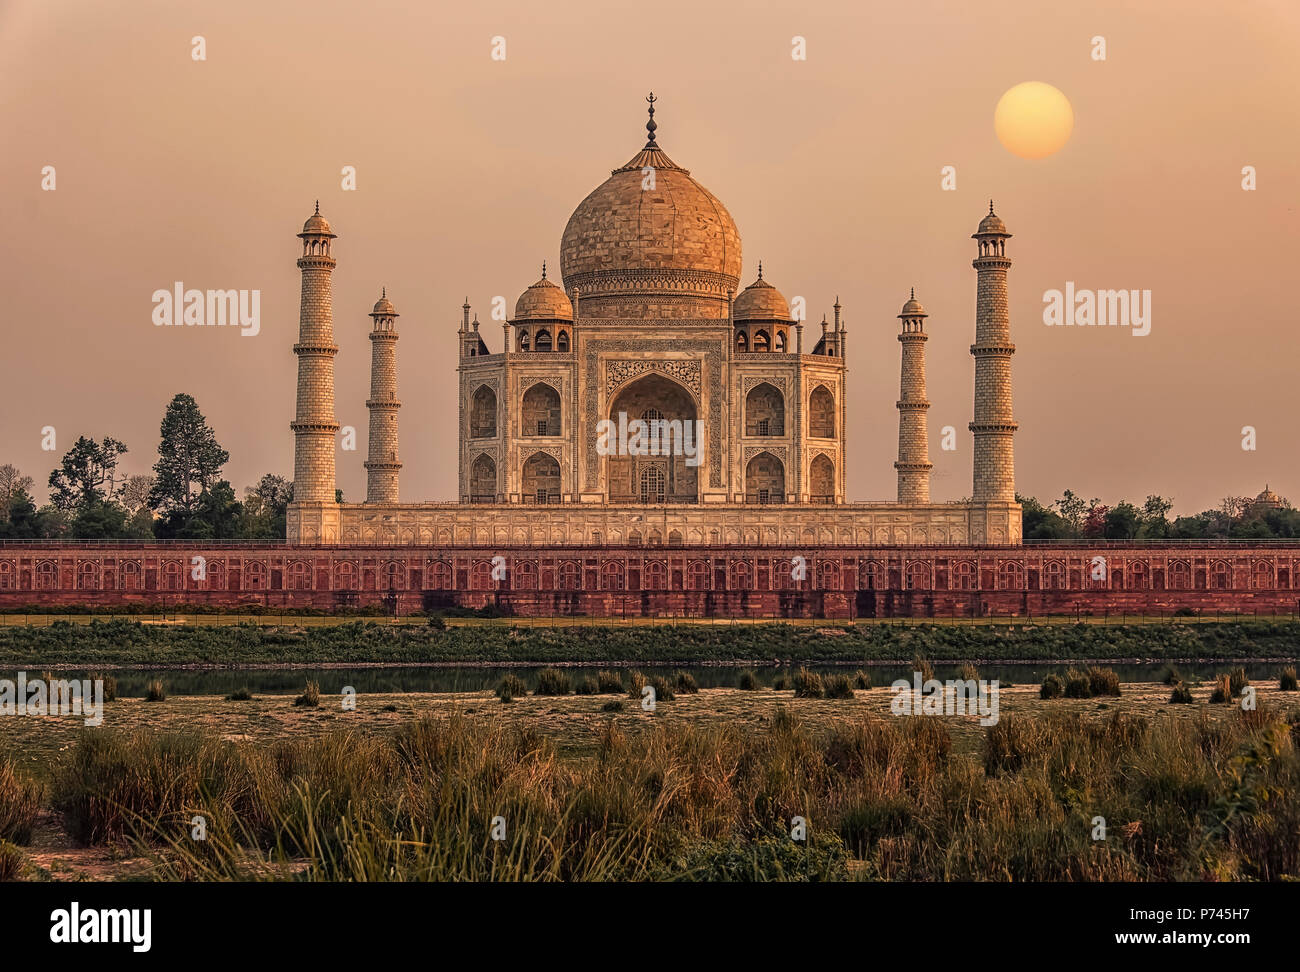 Sunset over the Taj Mahal, Agra, India - Stock Image